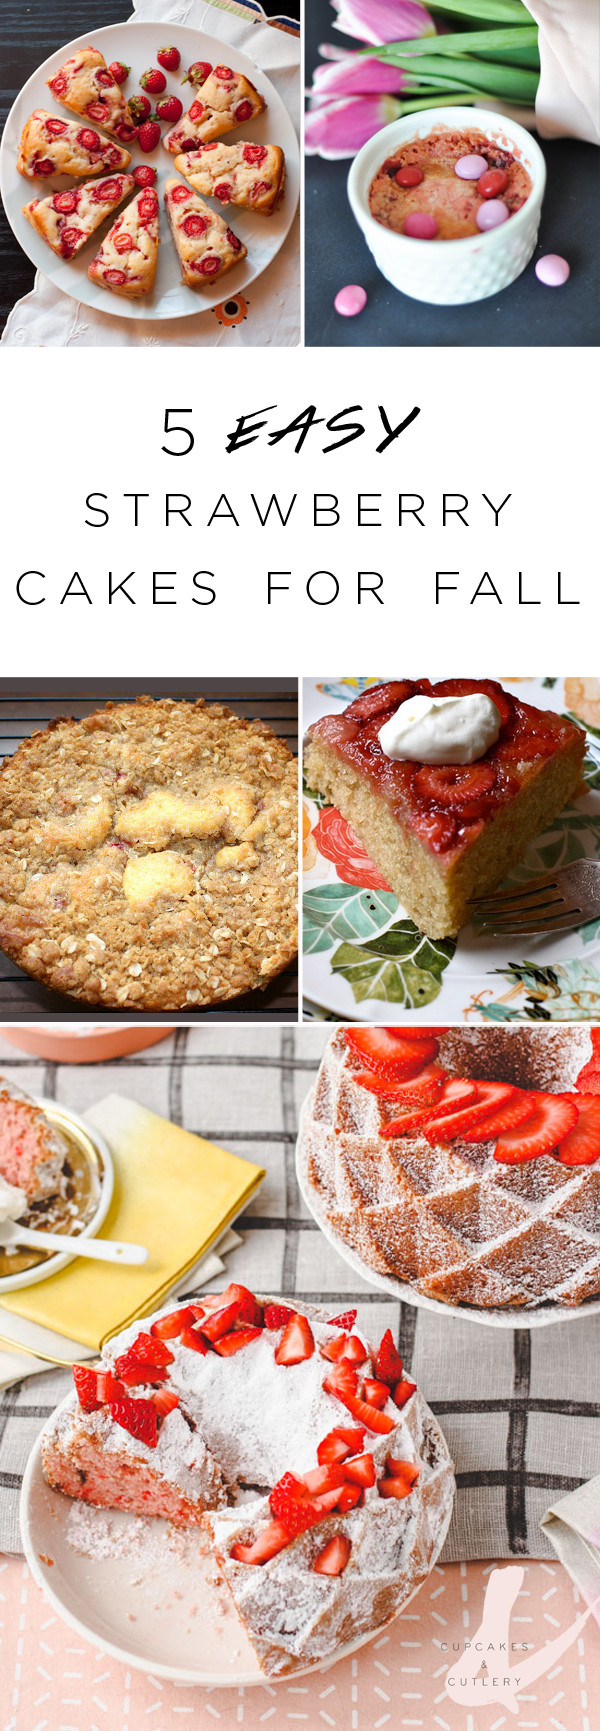 Fall Desserts For A Crowd  5 Easy Strawberry Cake Recipes for Fall